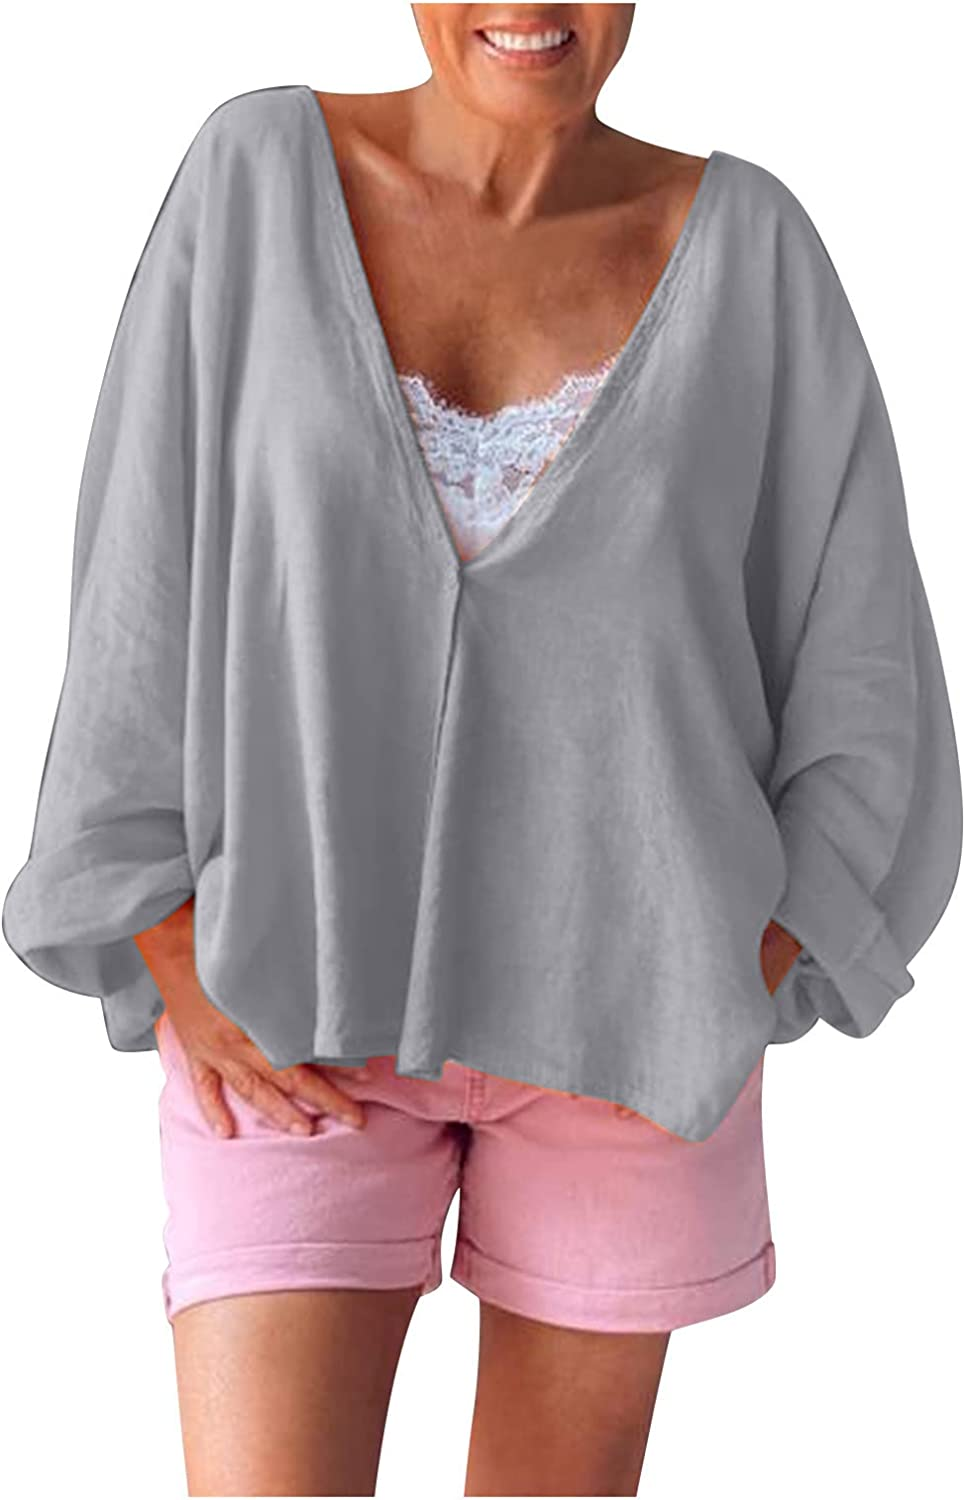 Womens Causal Solid Color Tops V Neck Roll up Sleeve Tshirts Workout Tops Fashion Sweatshirts Blouse Gifts